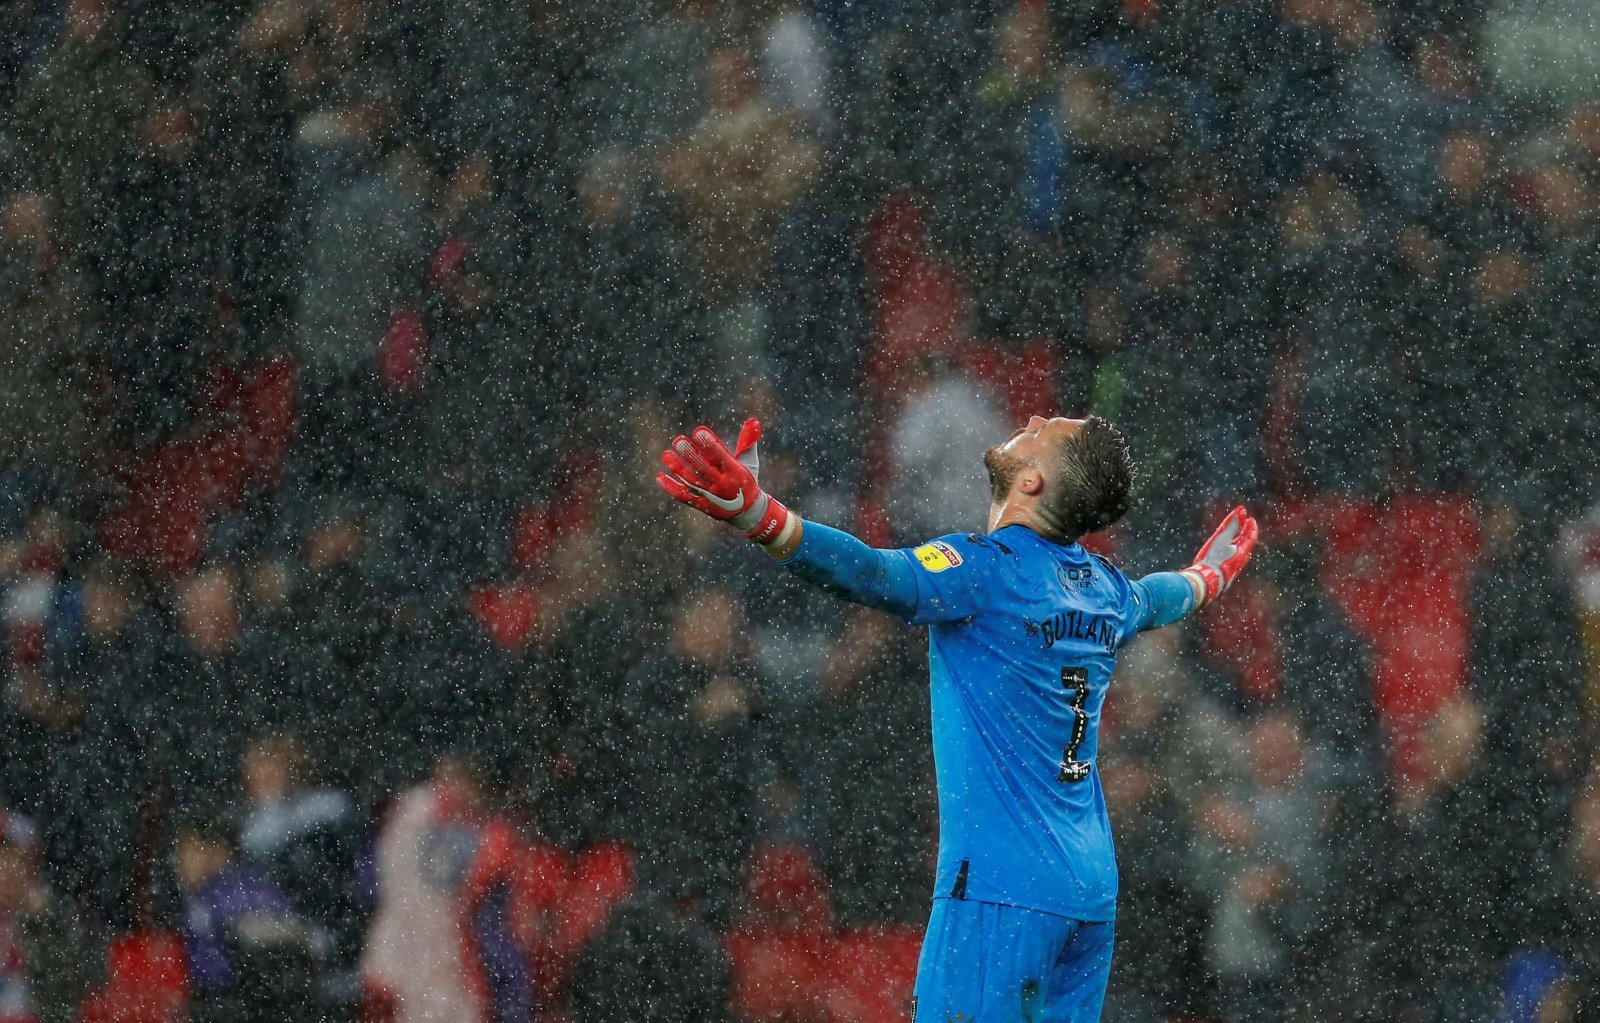 Bournemouth and Jack Butland could be a match made in heaven